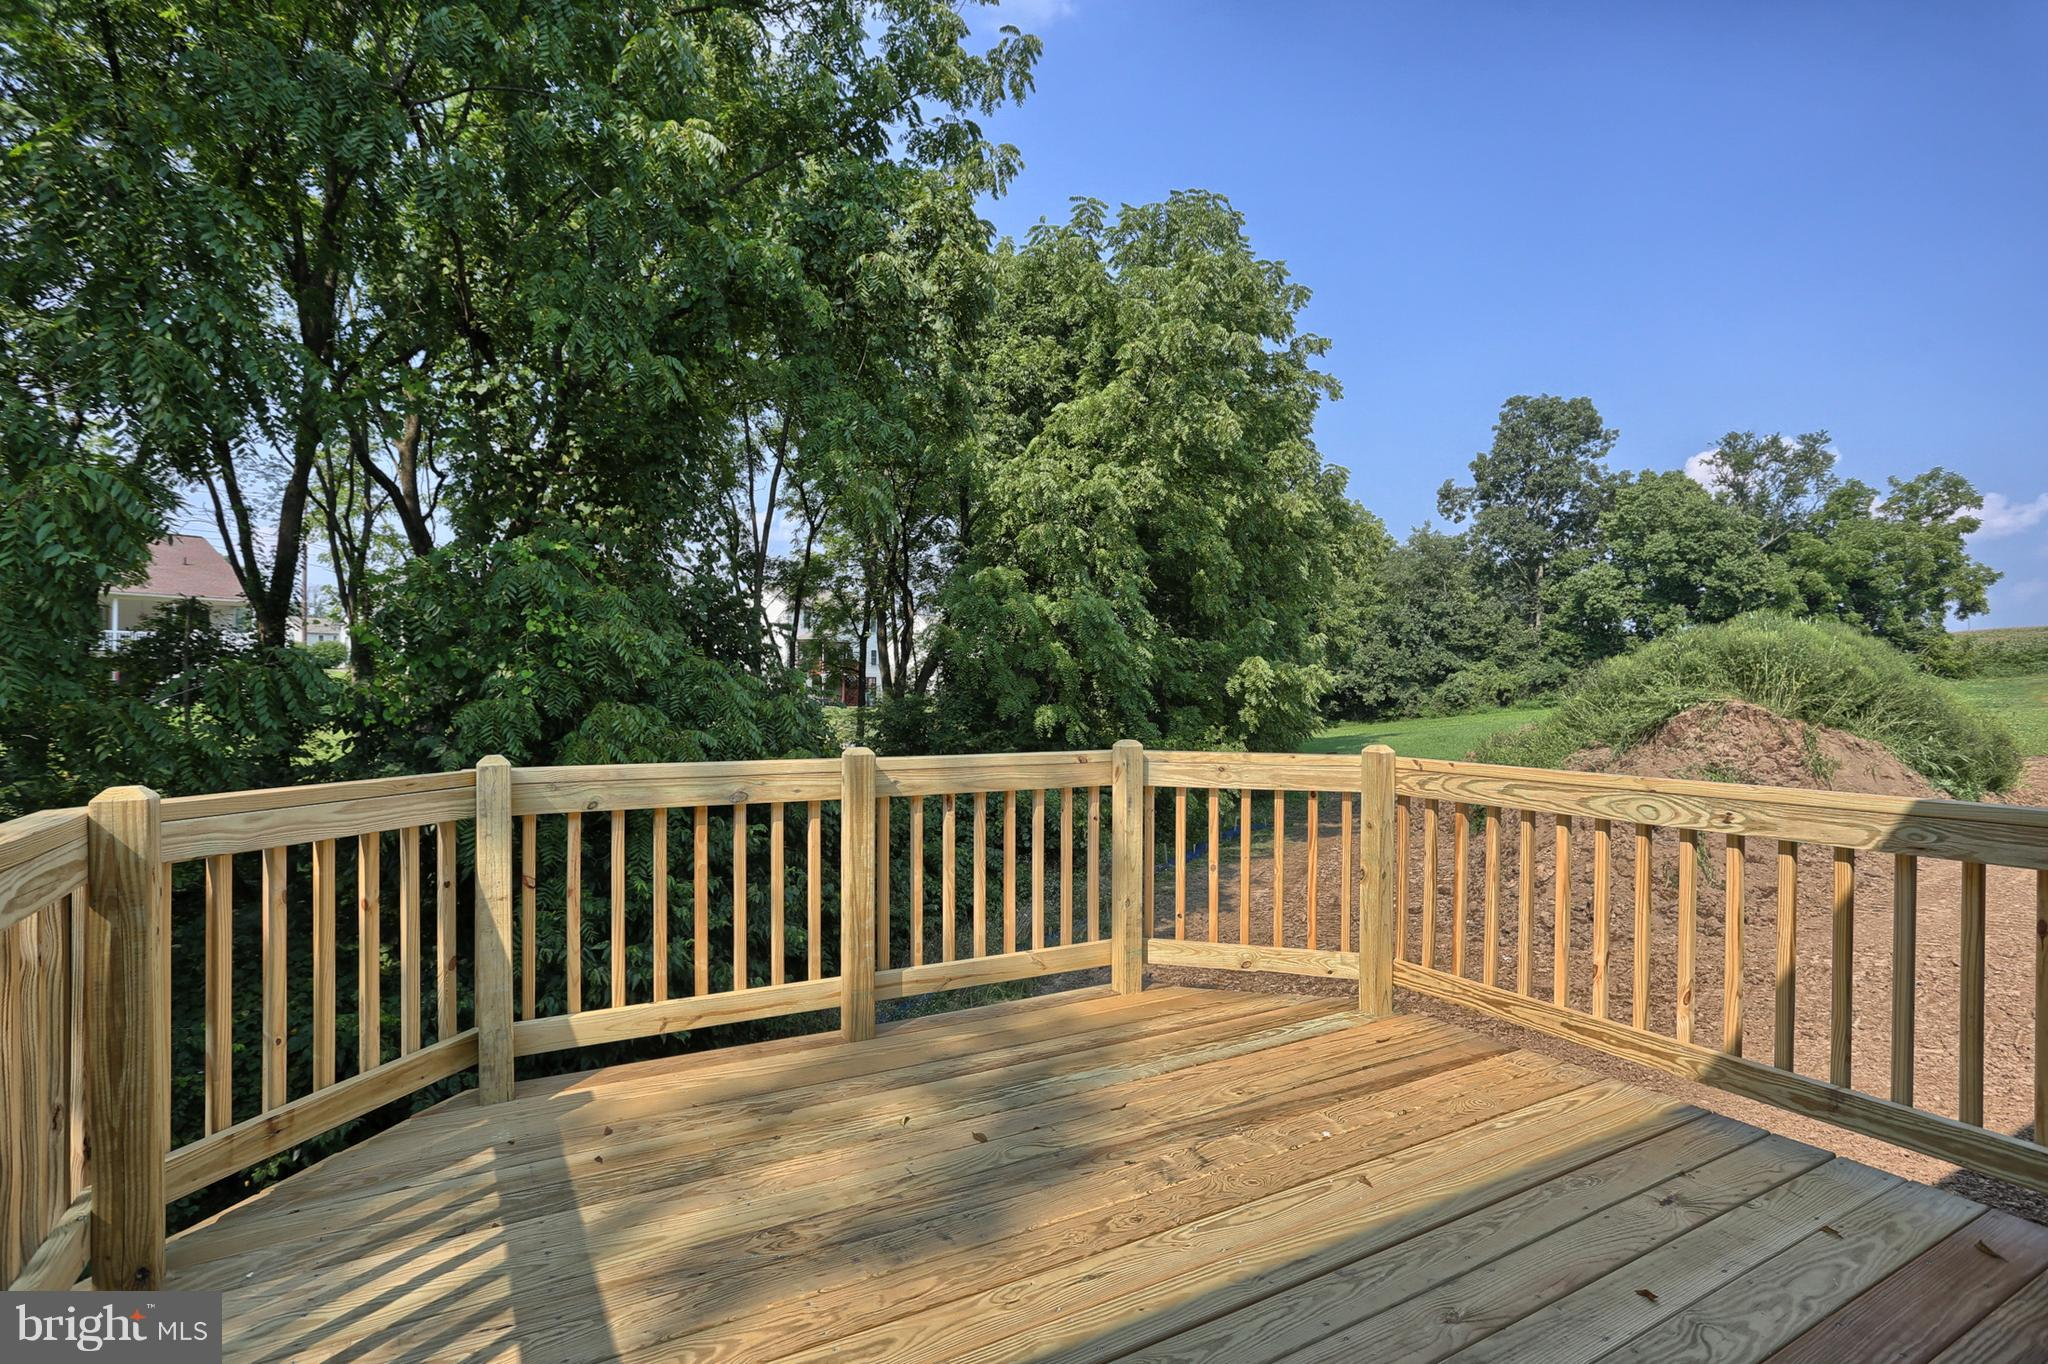 Deck or concrete patio depending on elevation.